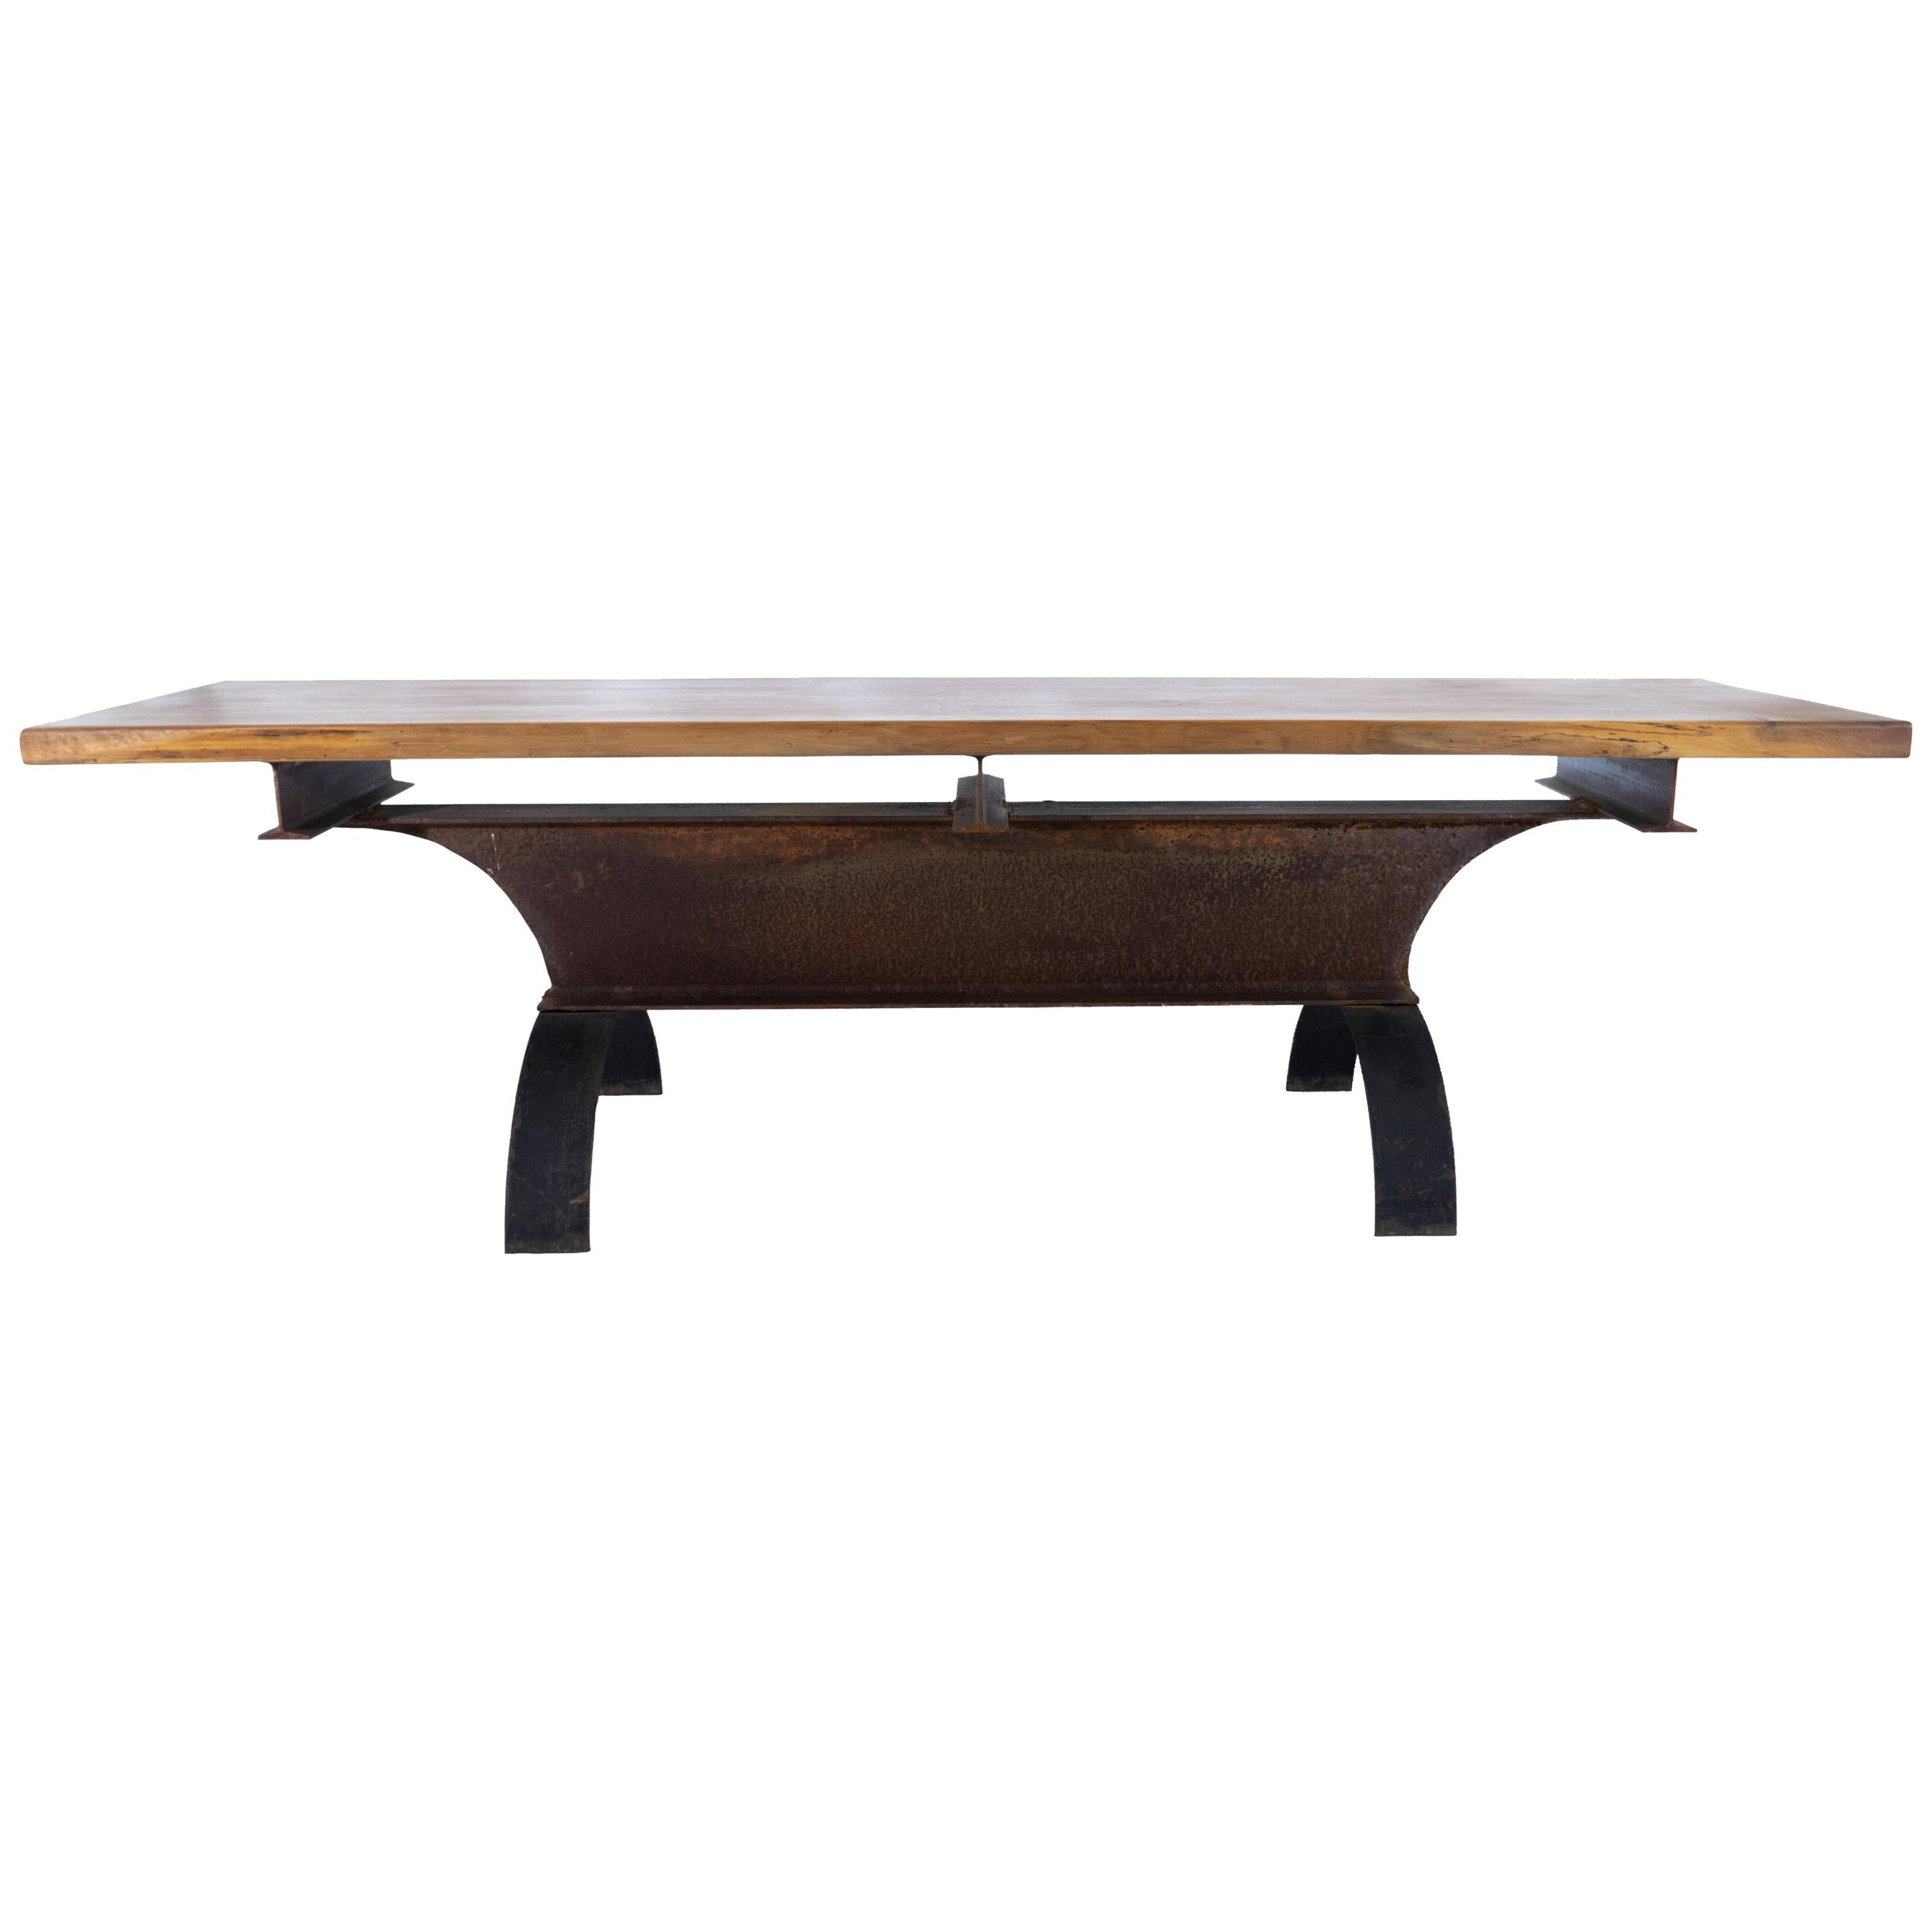 A1 Walnut and Steel Table, by Edelman New York